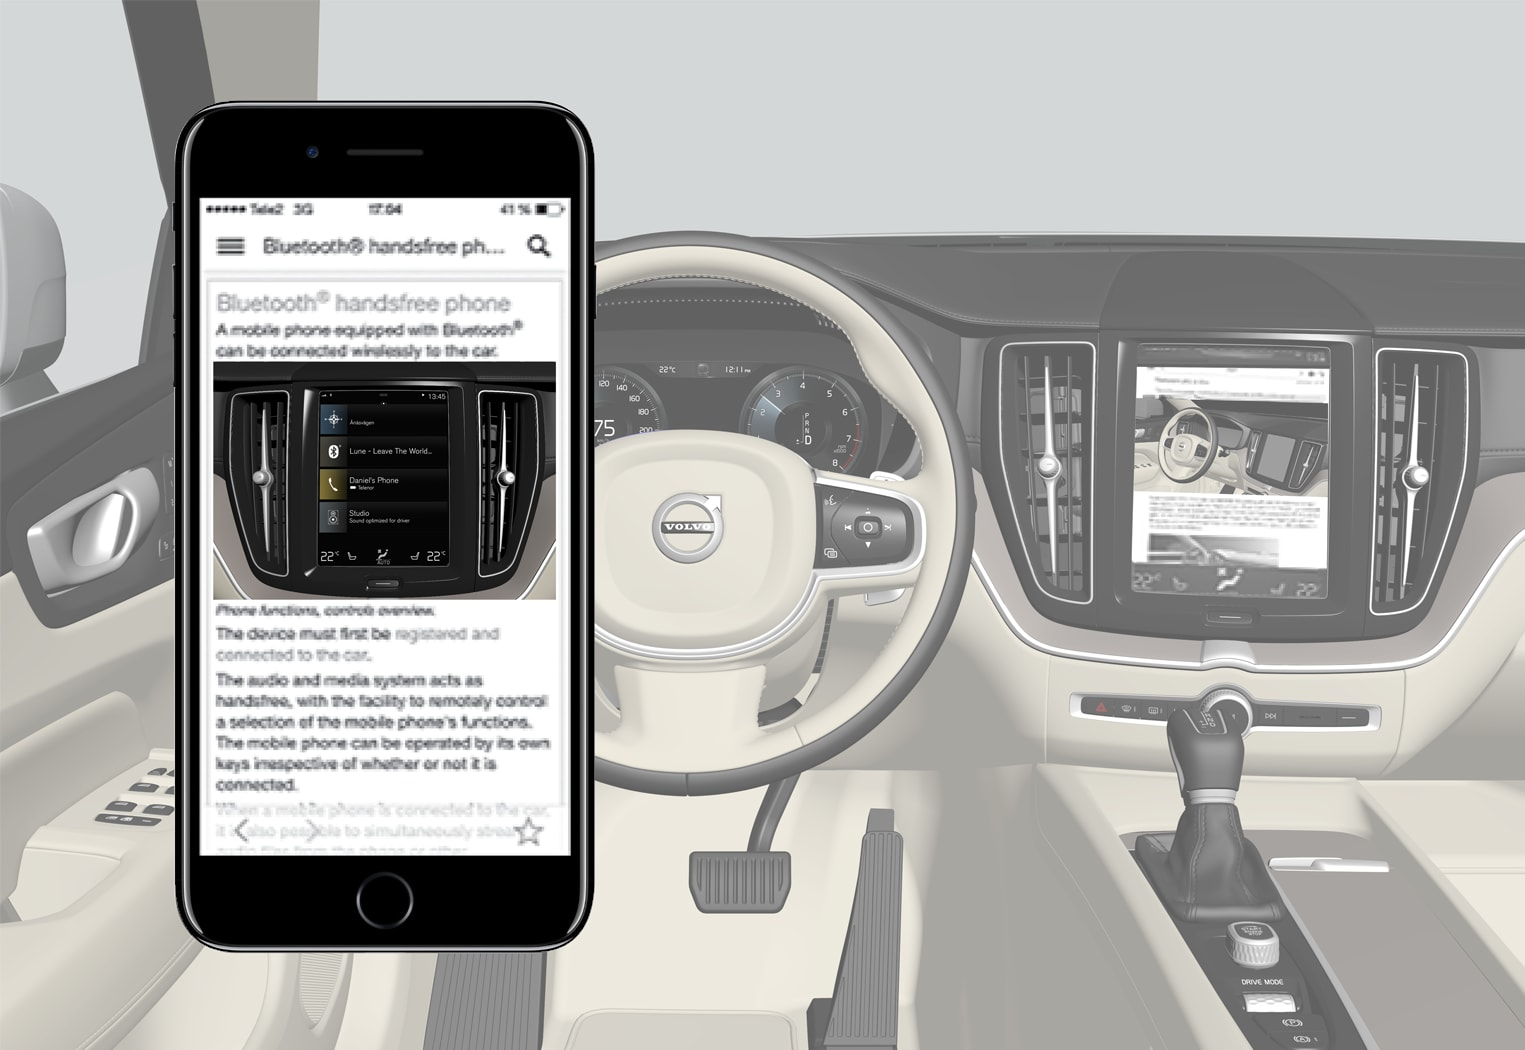 P5-1717-XC60/XC60H-Promote Owners manual app